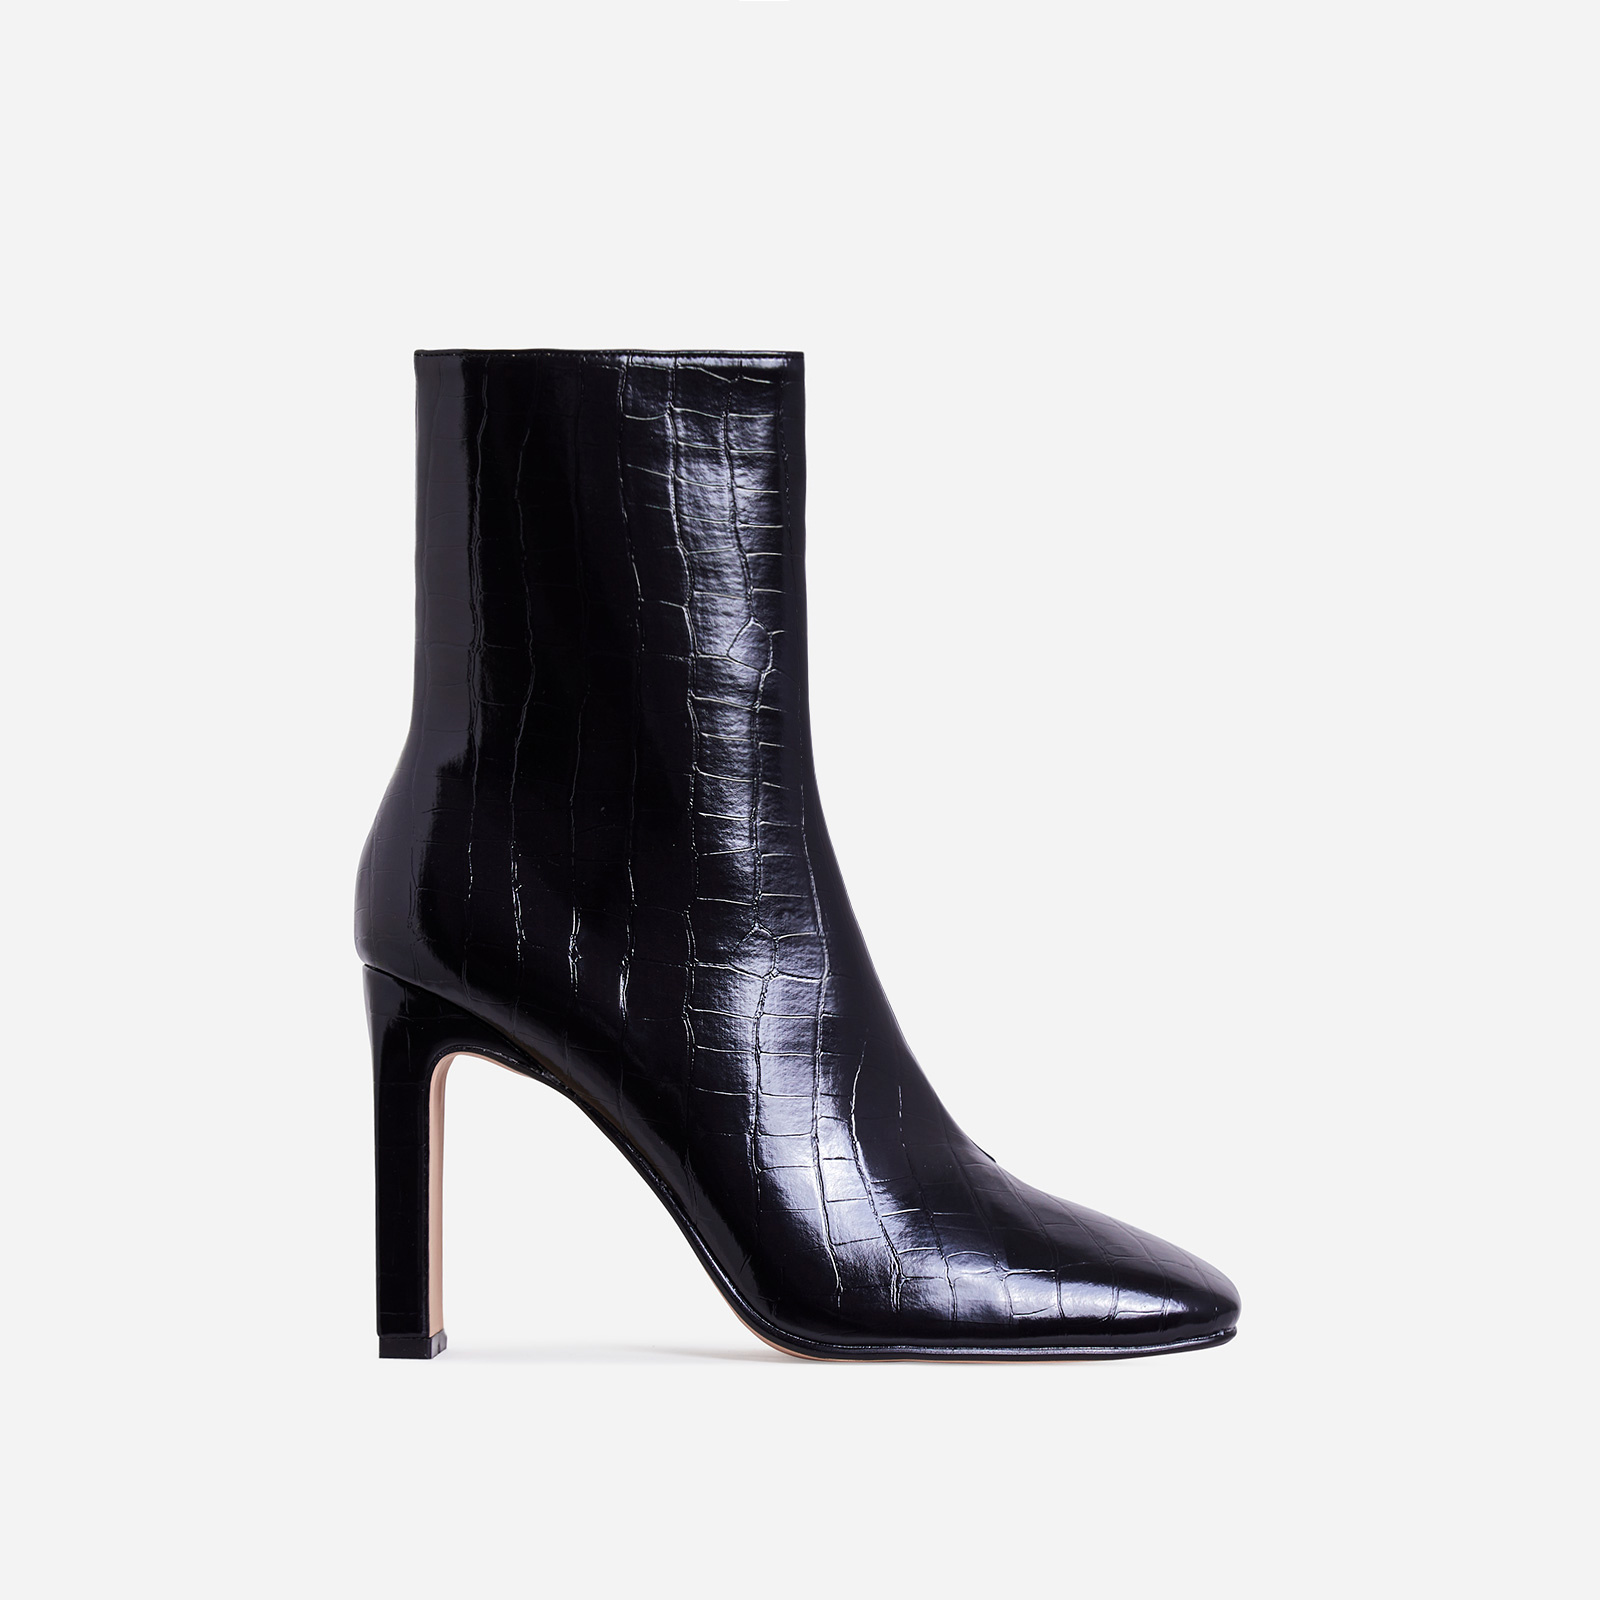 Klass Square Toe Thin Block Heel Ankle Boot In Black Croc Print Faux Leather